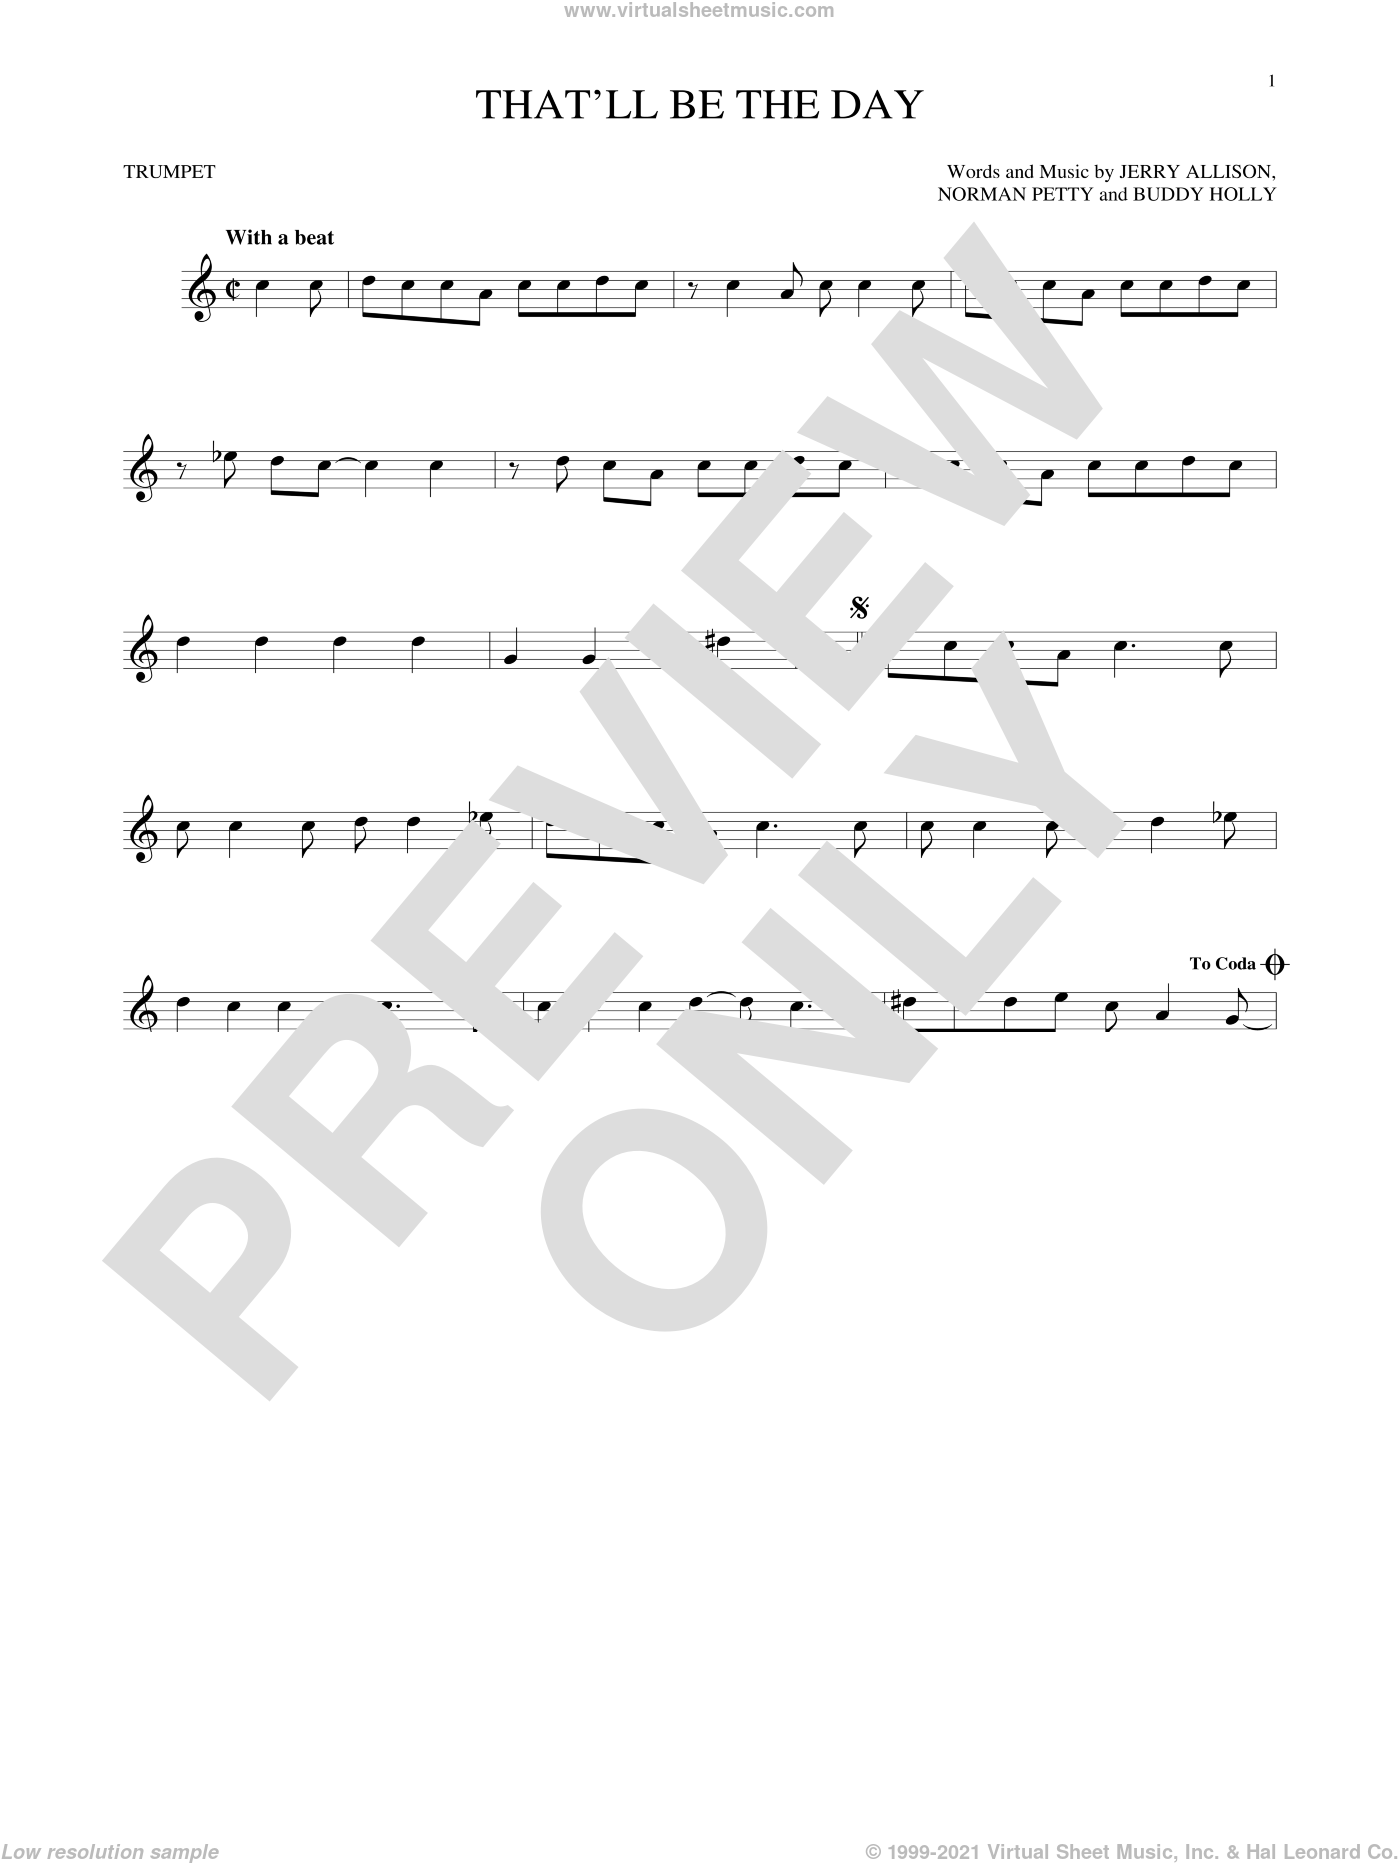 That'll Be The Day sheet music for trumpet solo by Norman Petty, Buddy Holly and Jerry Allison. Score Image Preview.